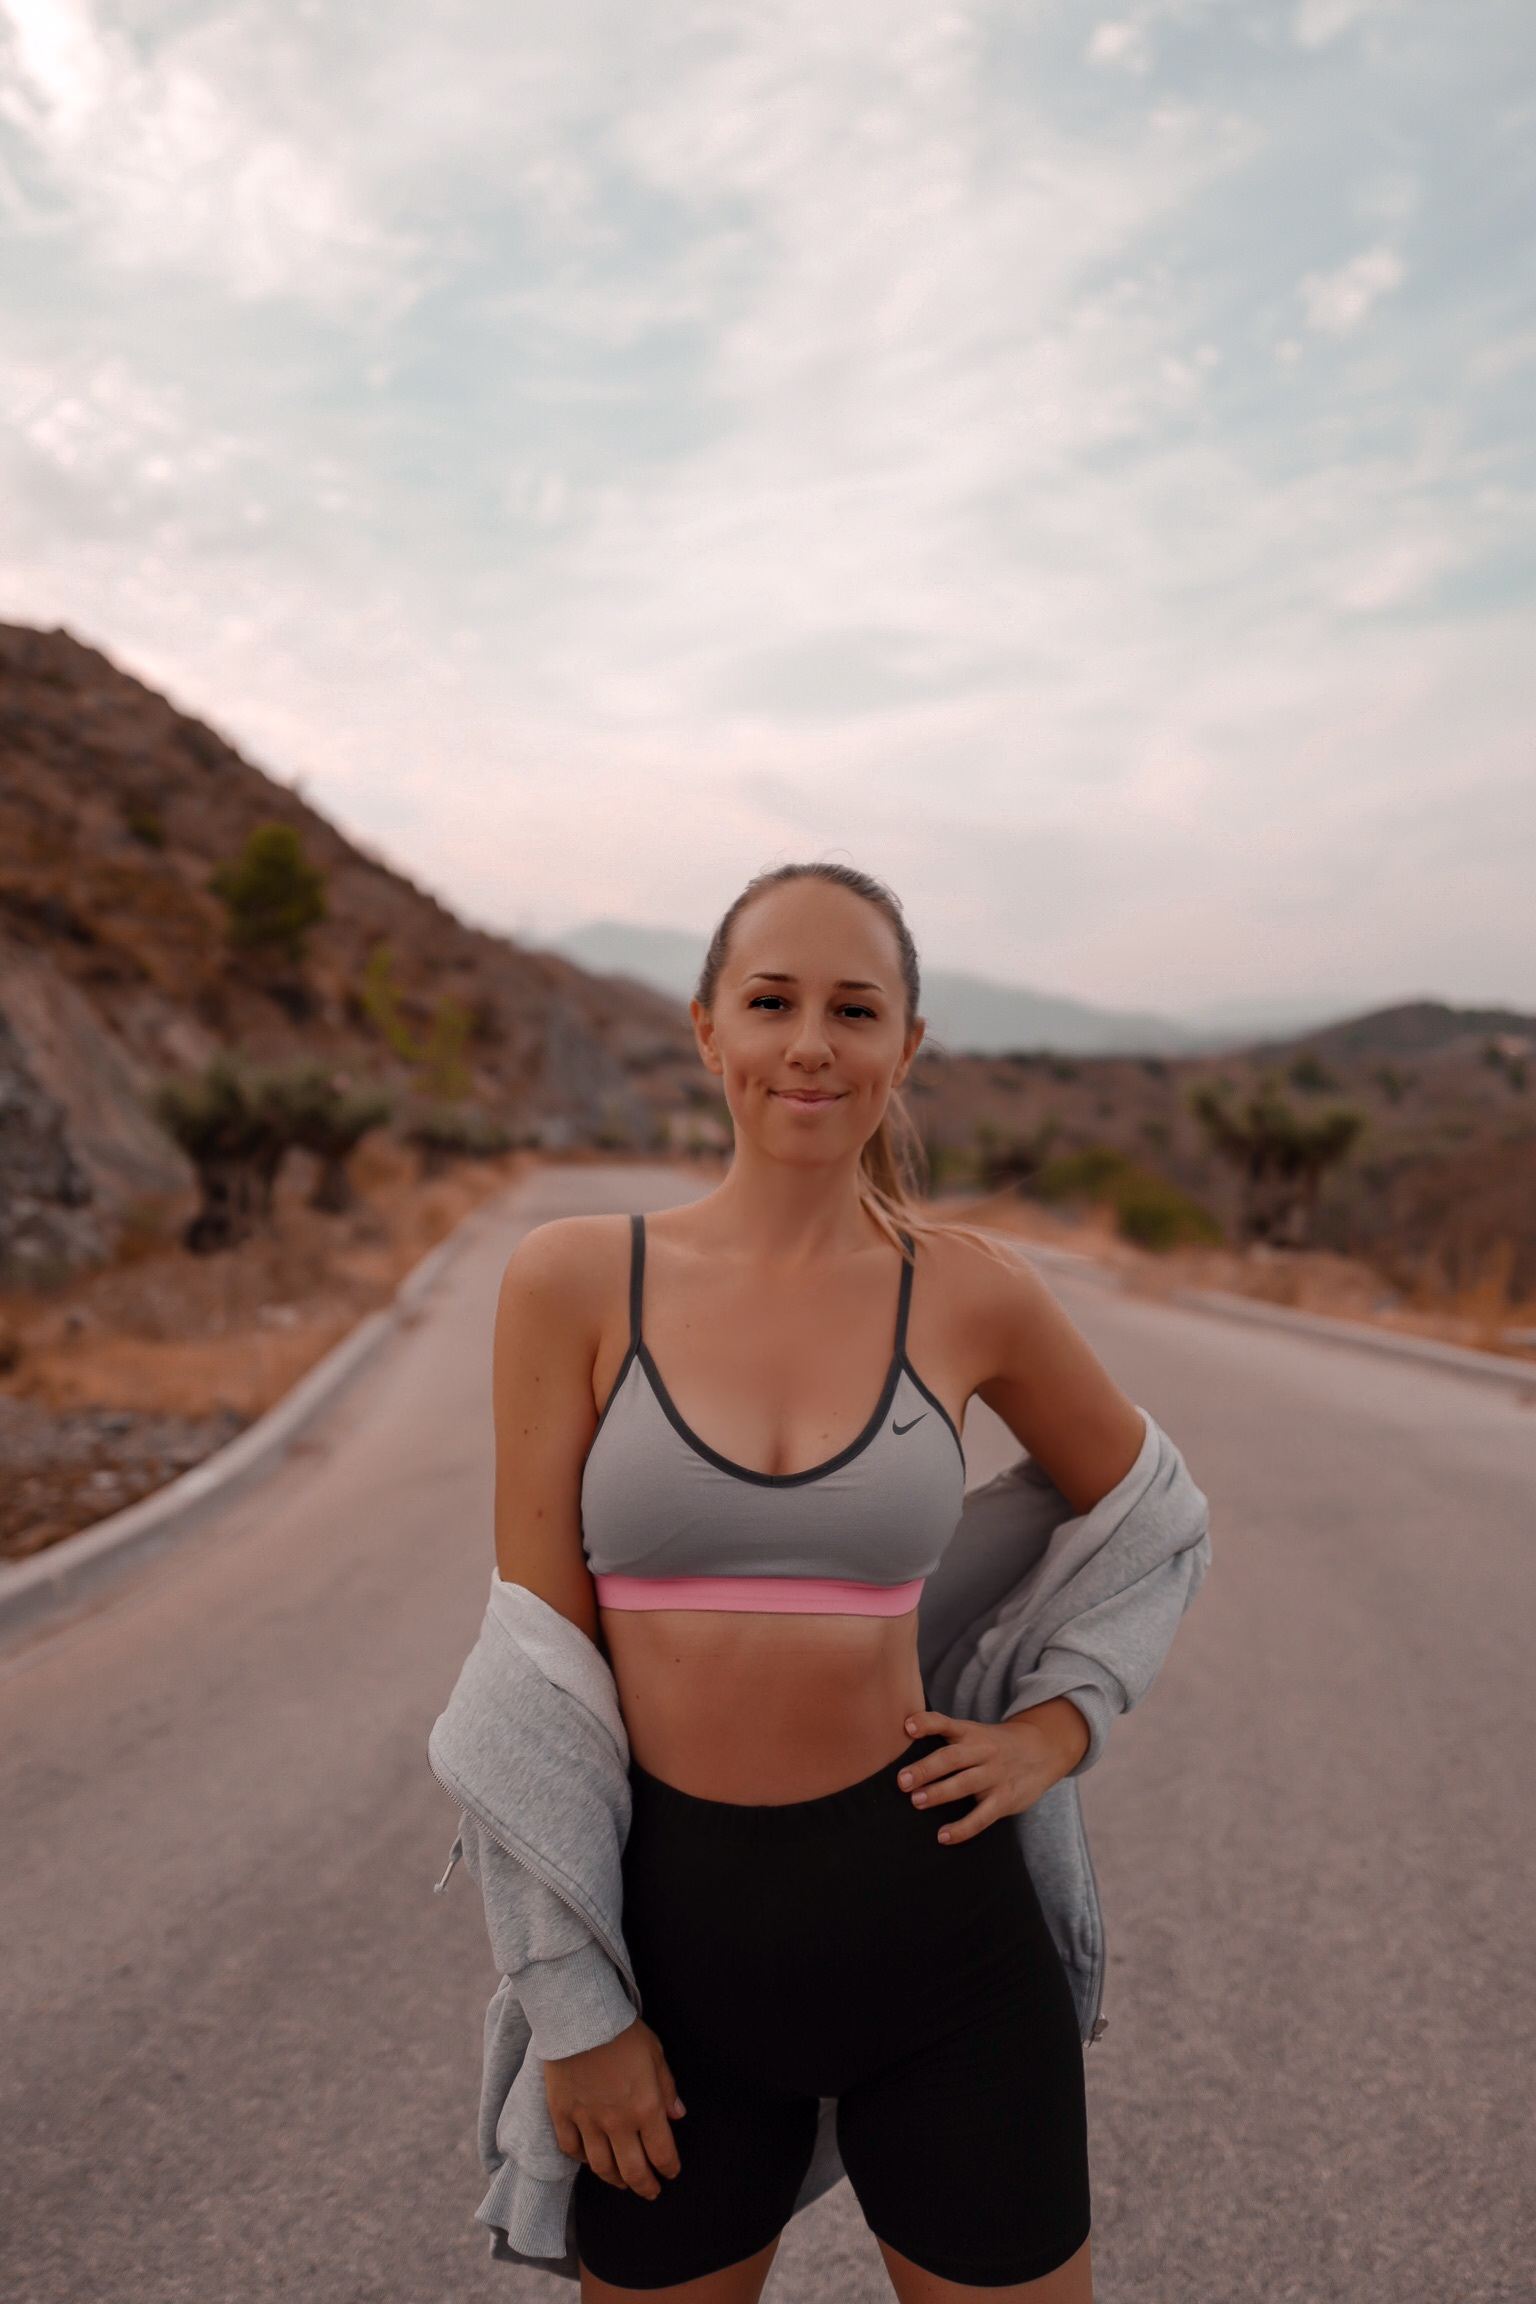 www.lindahaggh.com how to get the motivation to workout with a tight schedule.jpg